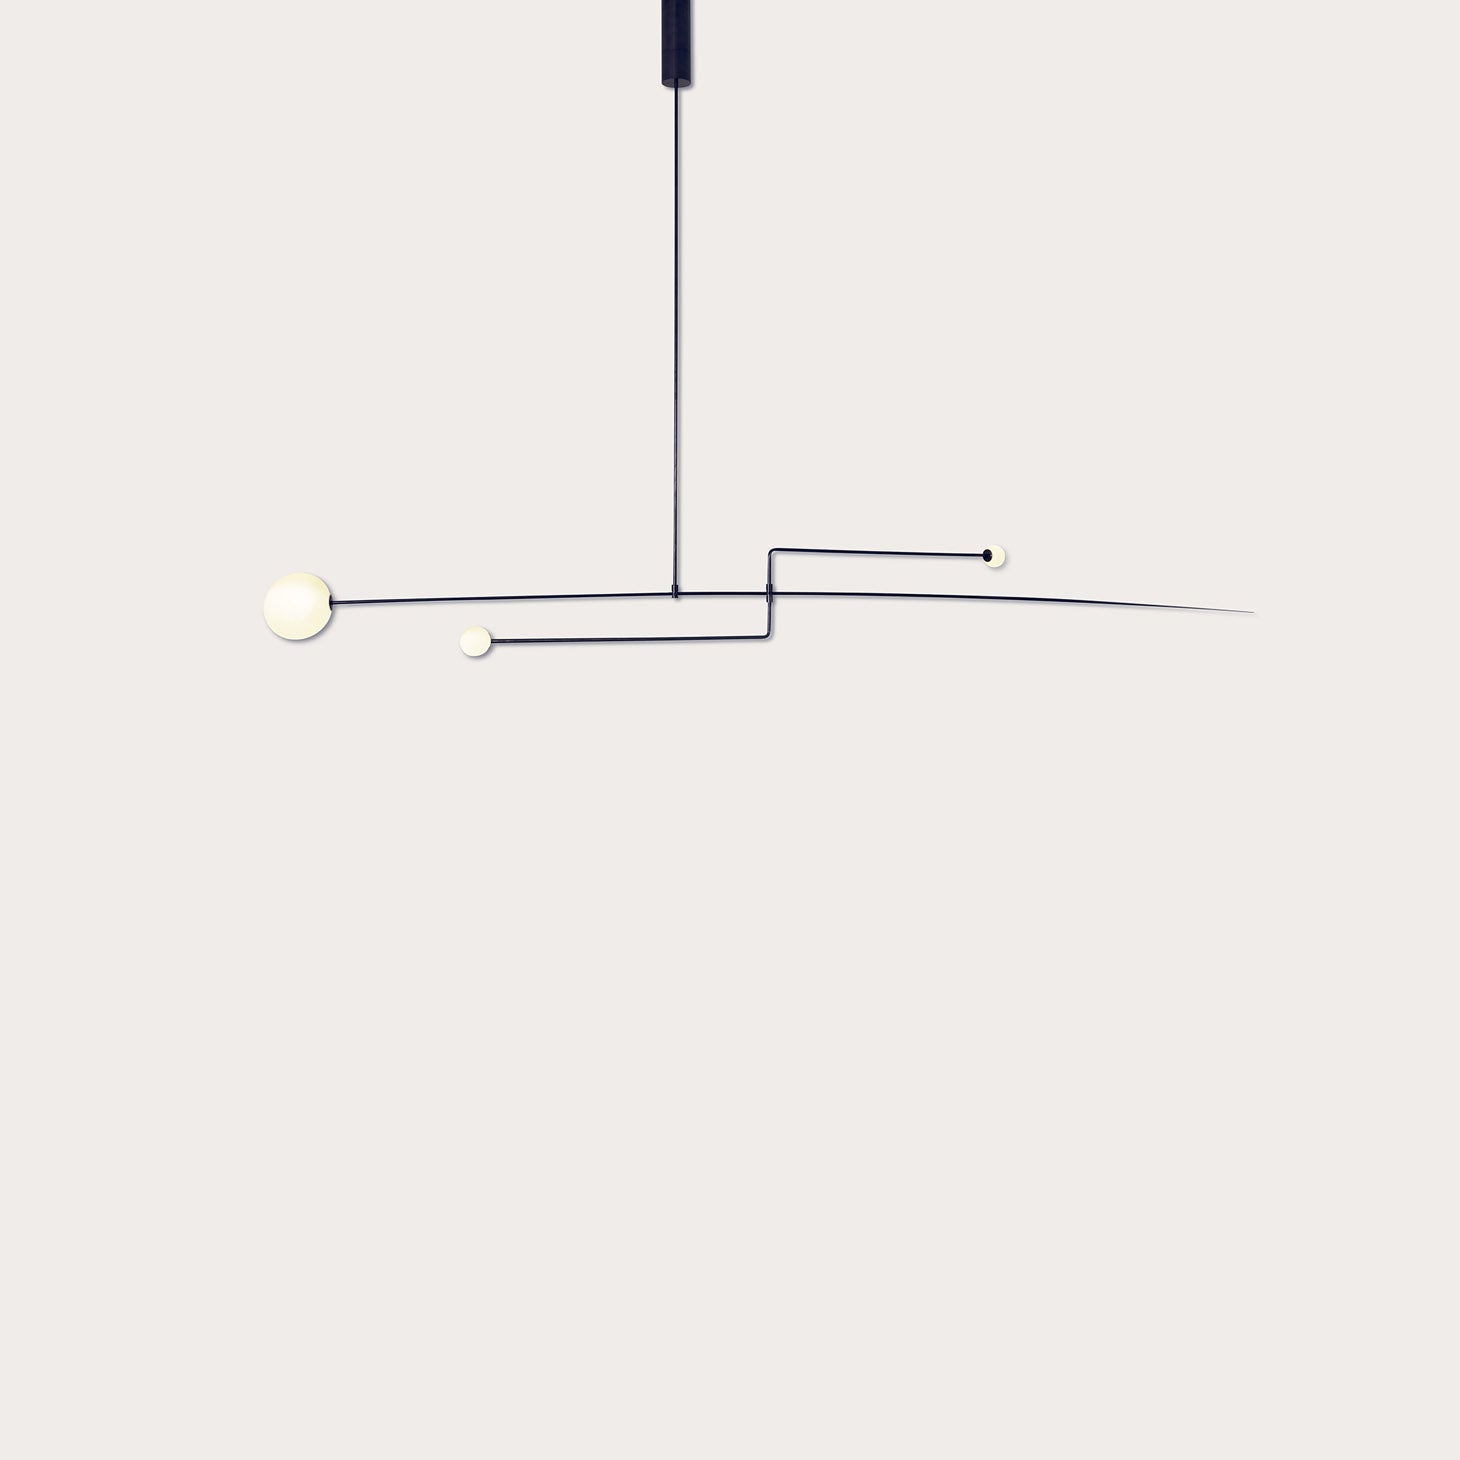 Mobile Chandelier 3 Lighting Michael Anastassiades Designer Furniture Sku: 717-160-10008